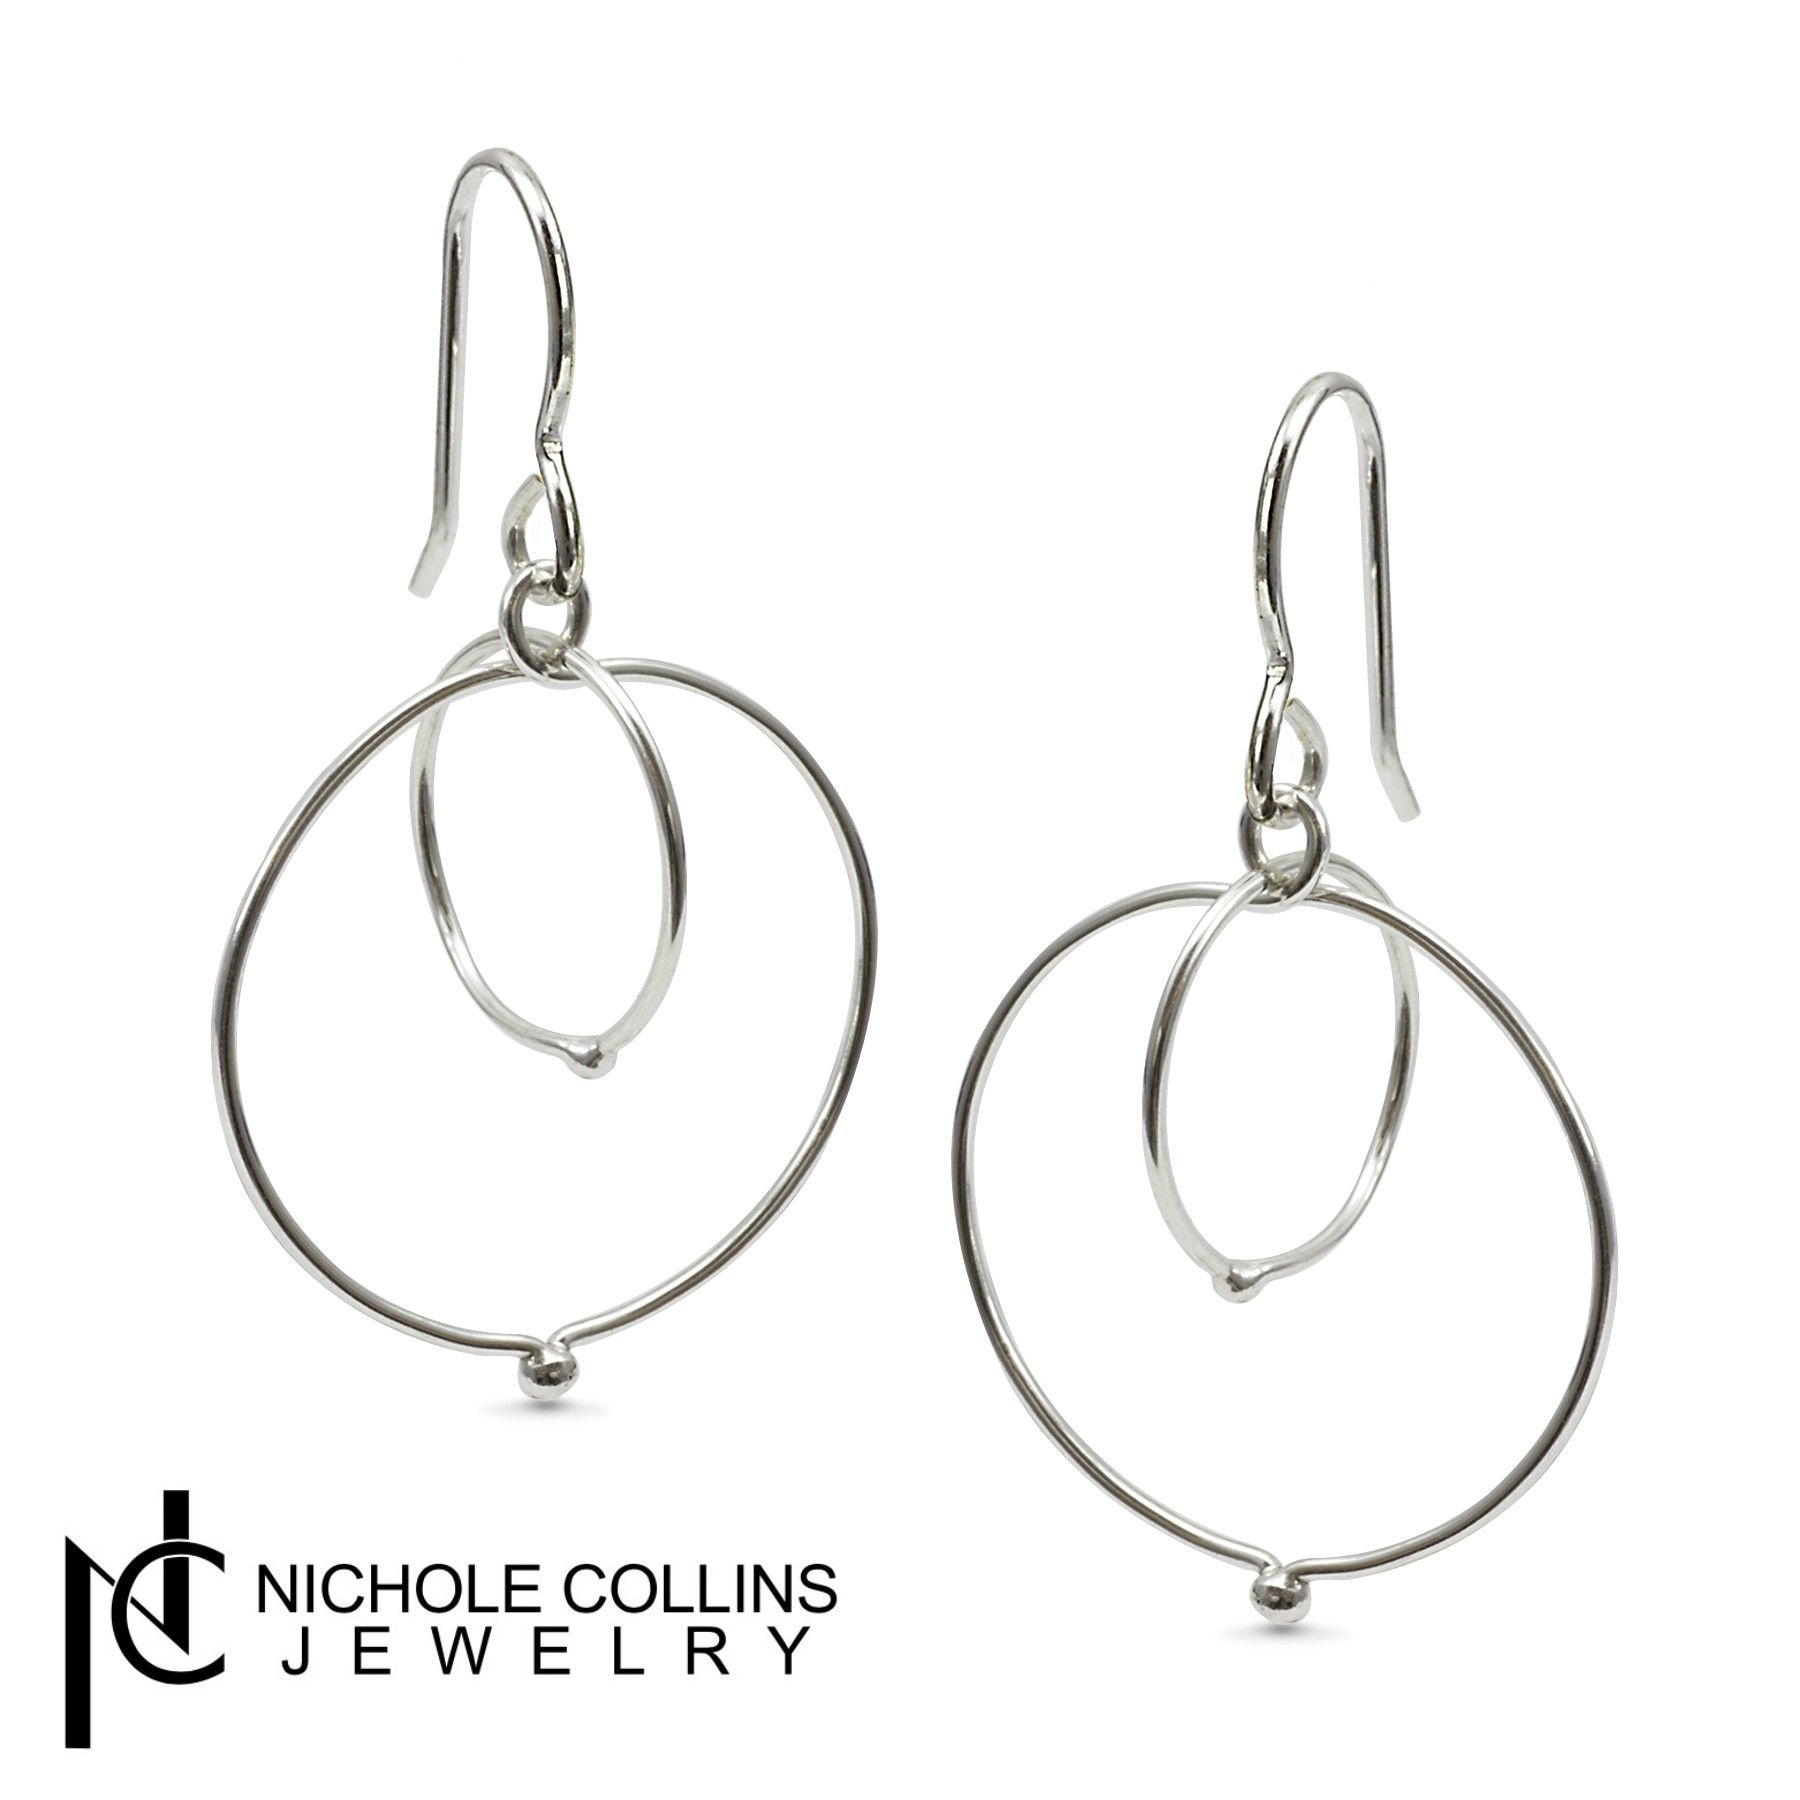 A simple yet elegant pair of staple earrings from Nichole Collins Jewelry.